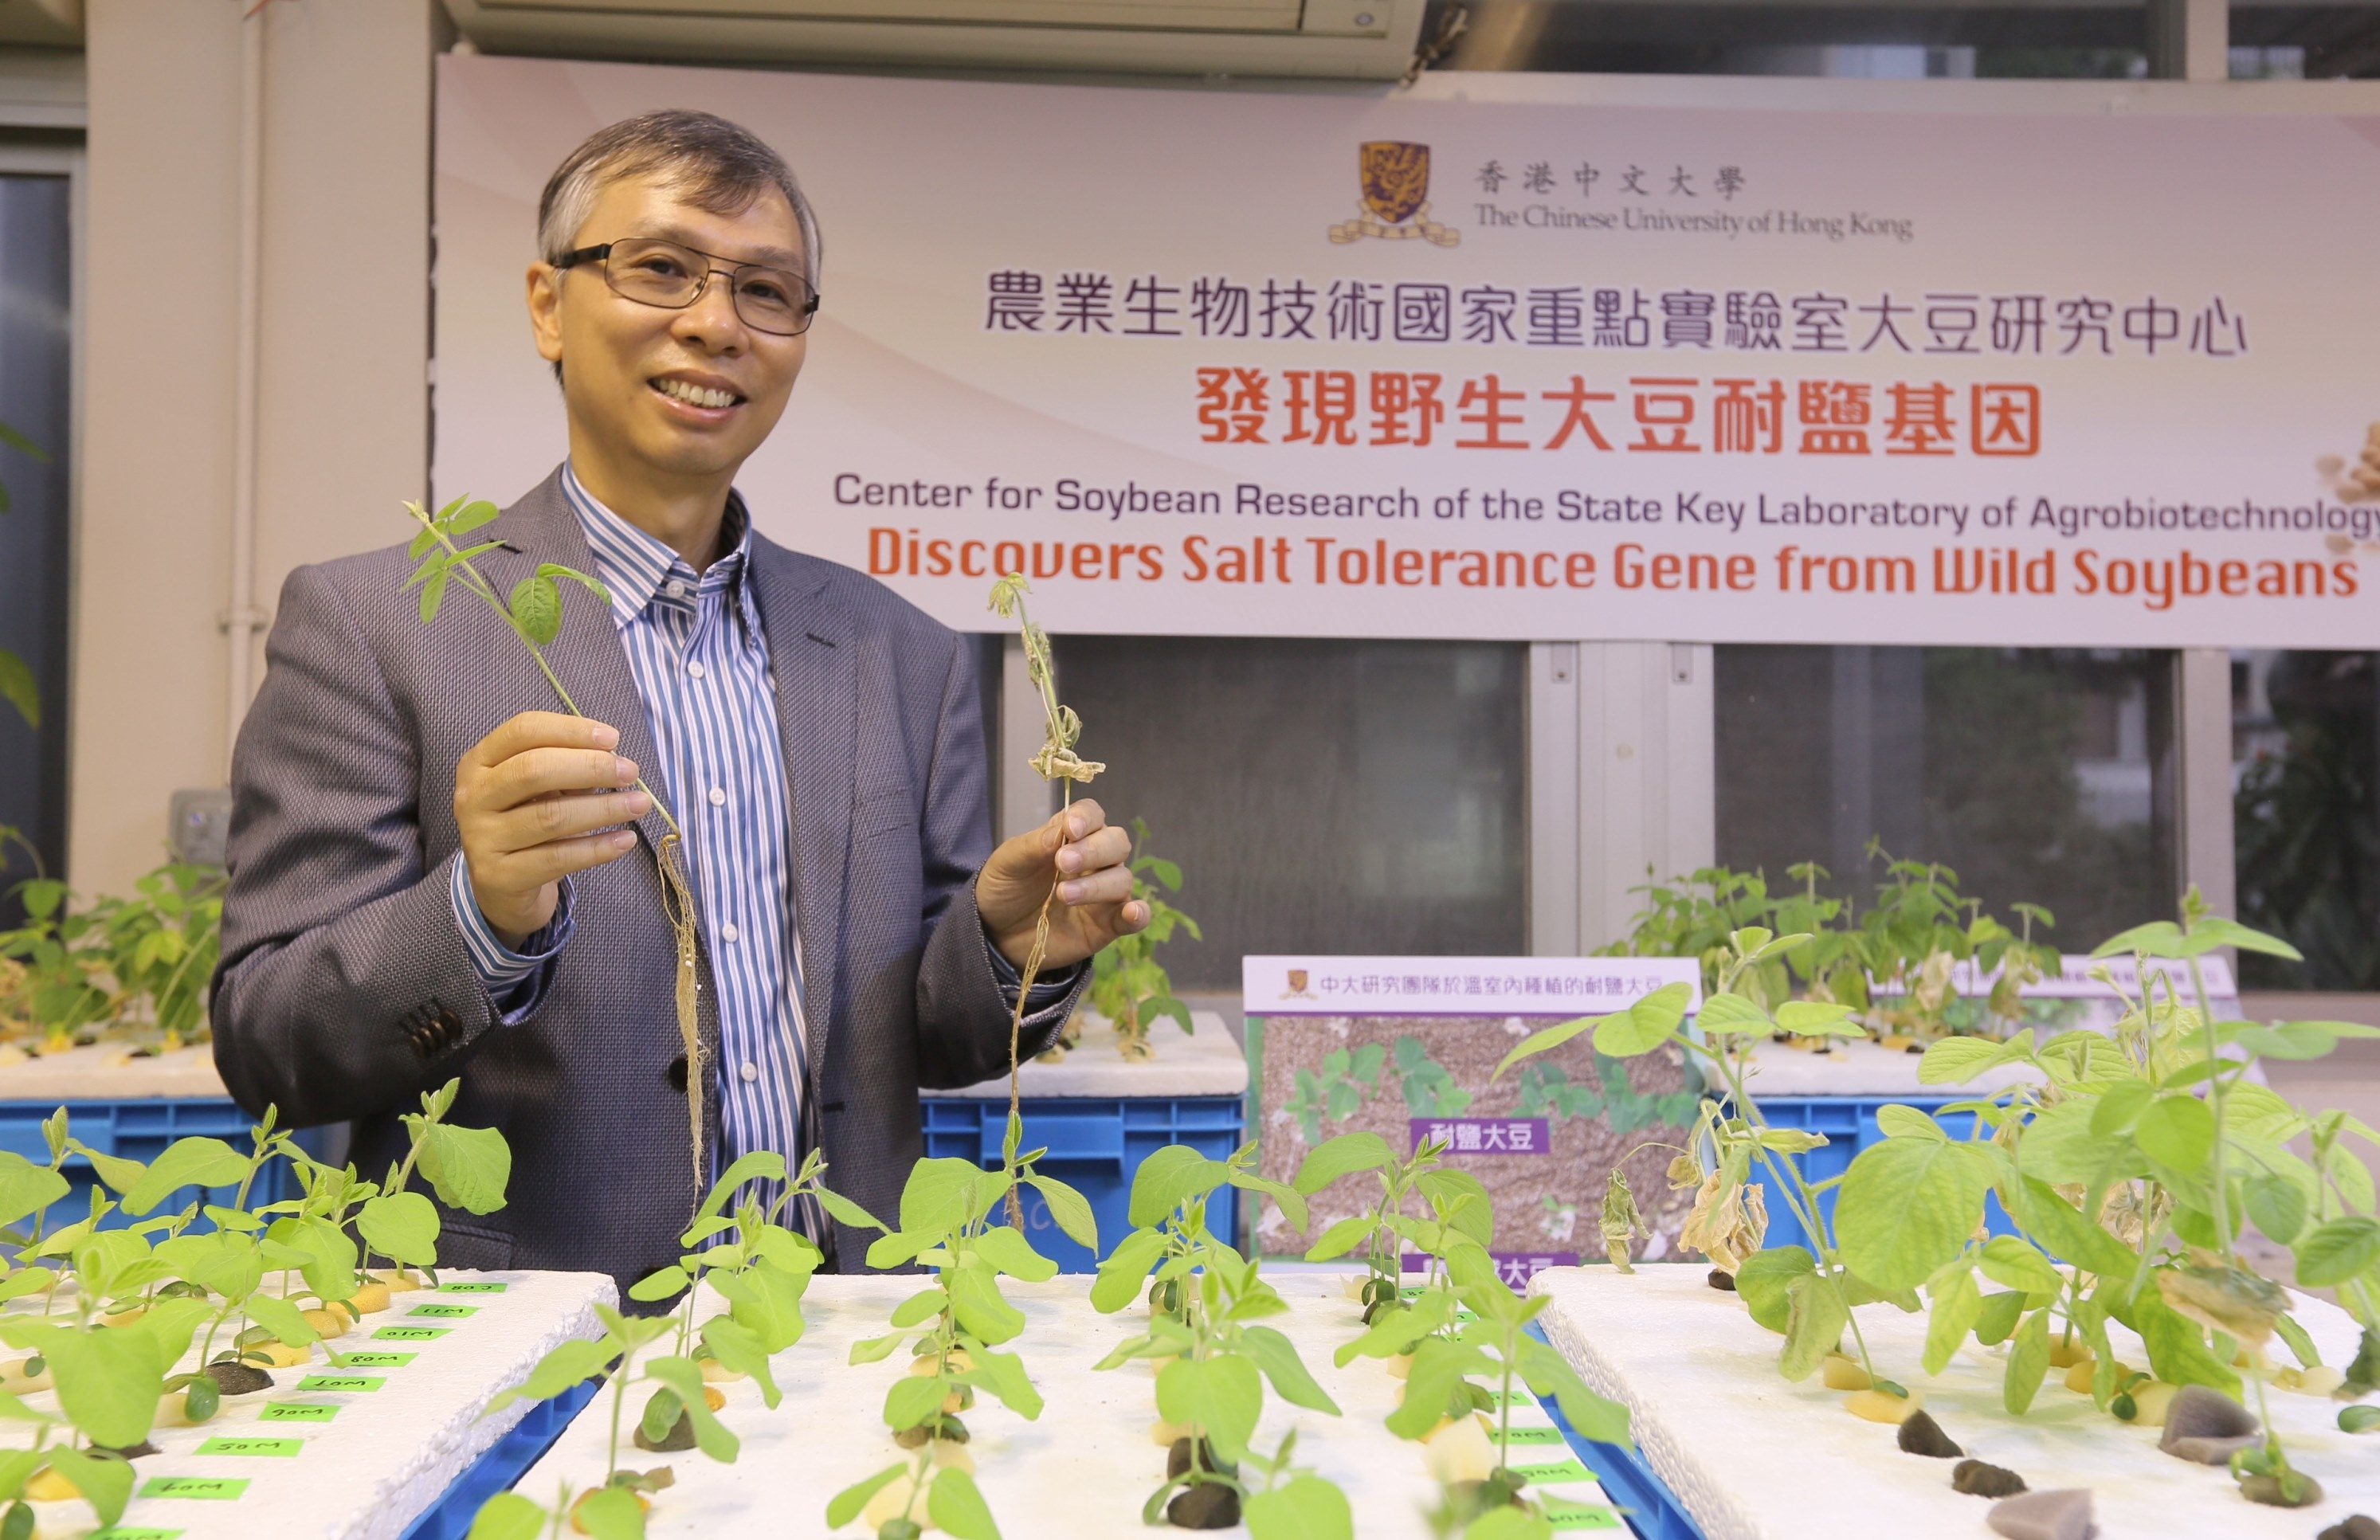 Prof. Lam Hon-ming shows the difference of salt tolerant soybean and salt sensitive soybean.